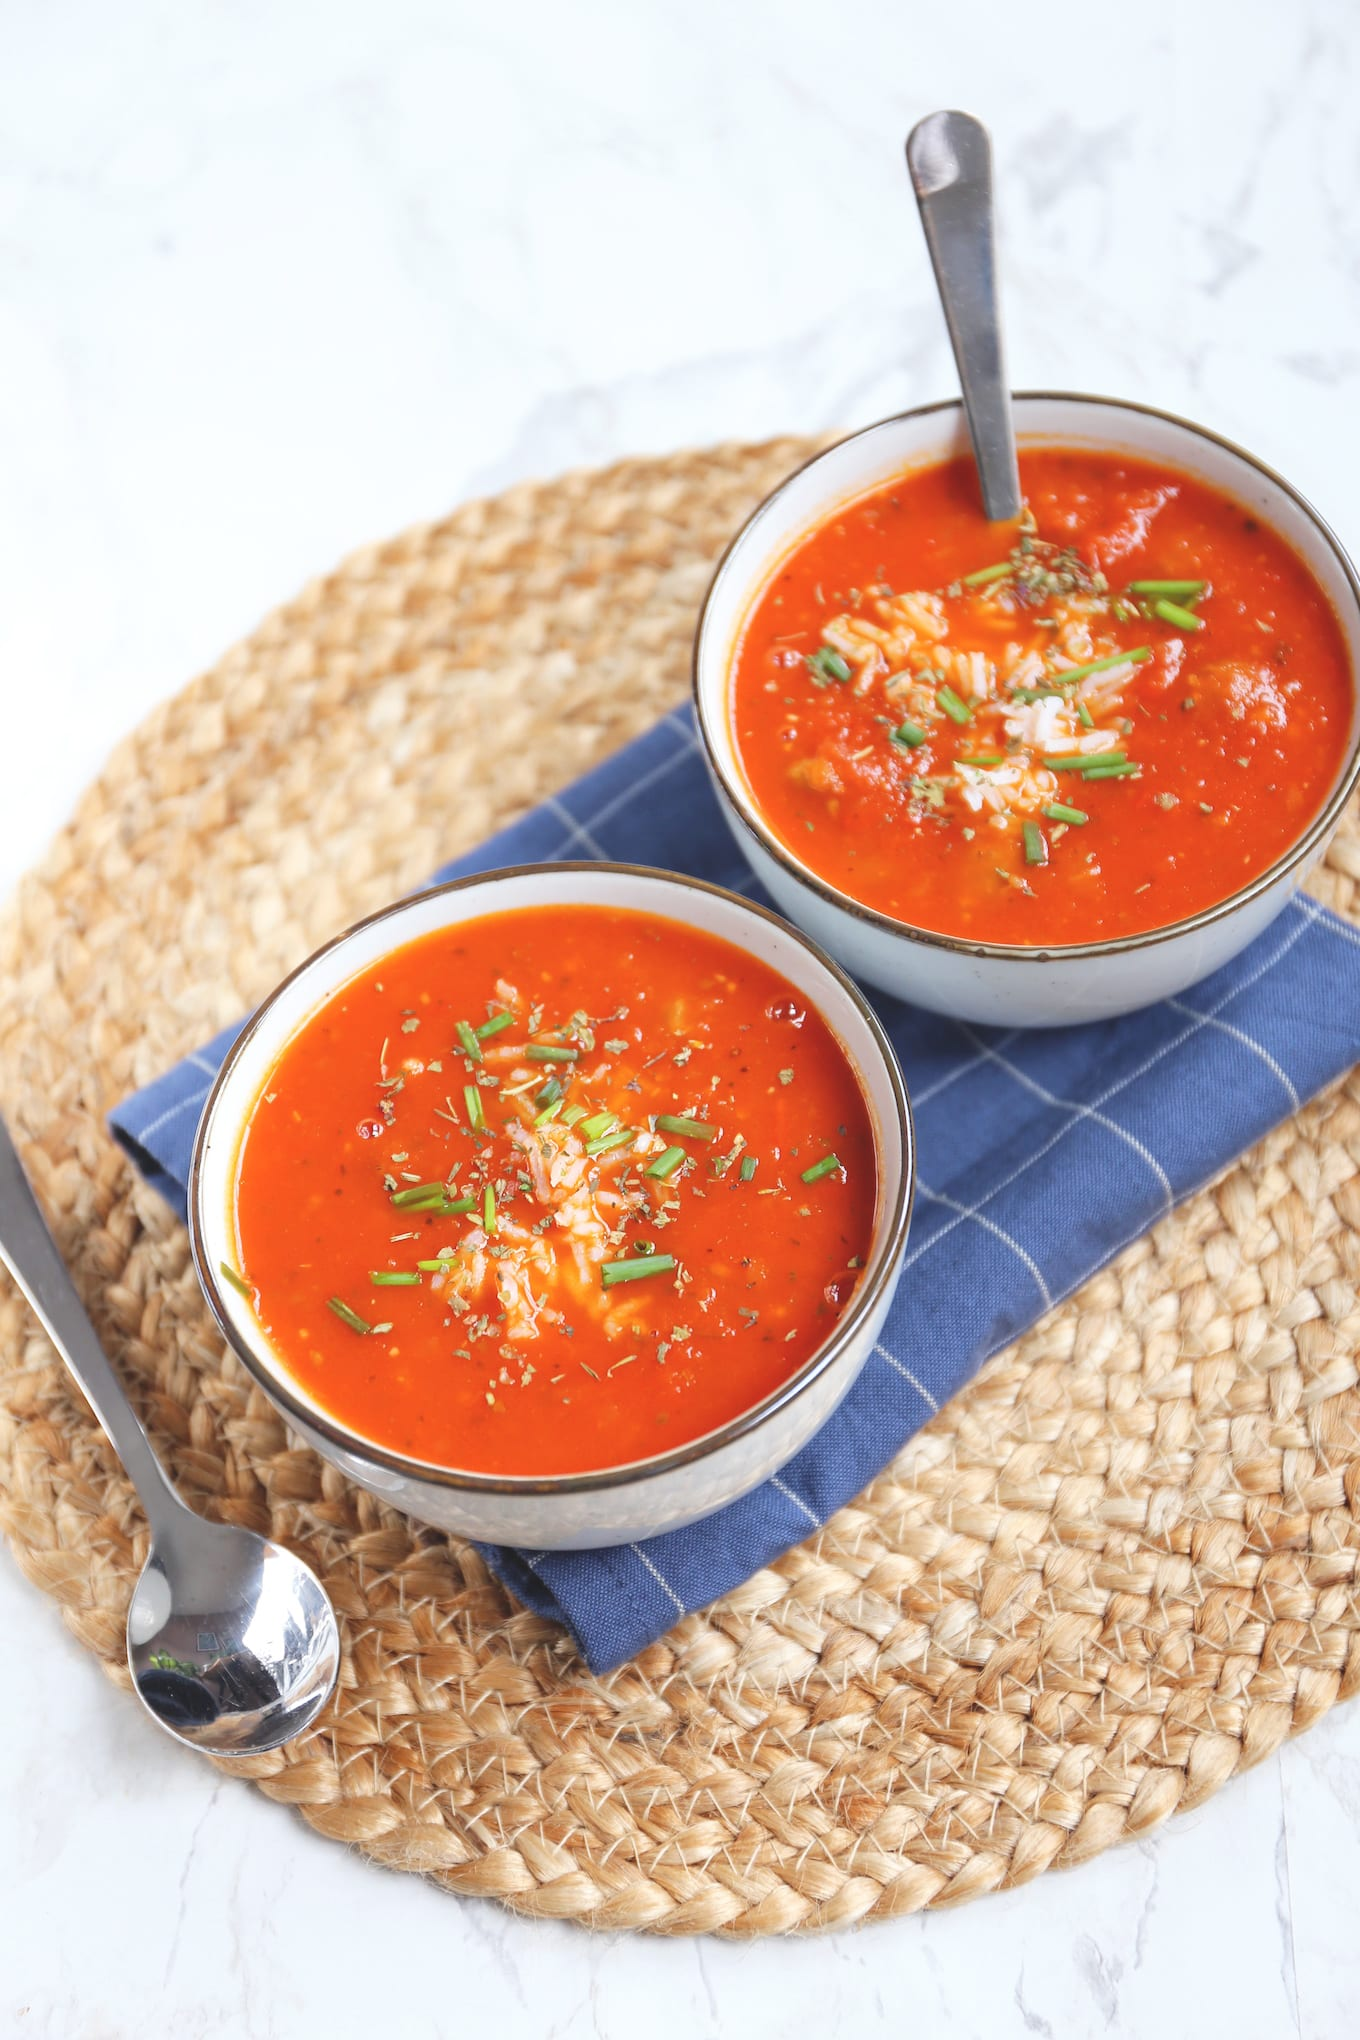 Tomato soup with rice &quot;width =&quot; 1360 &quot;height =&quot; 2040 &quot;/&gt; <br /> <img class=